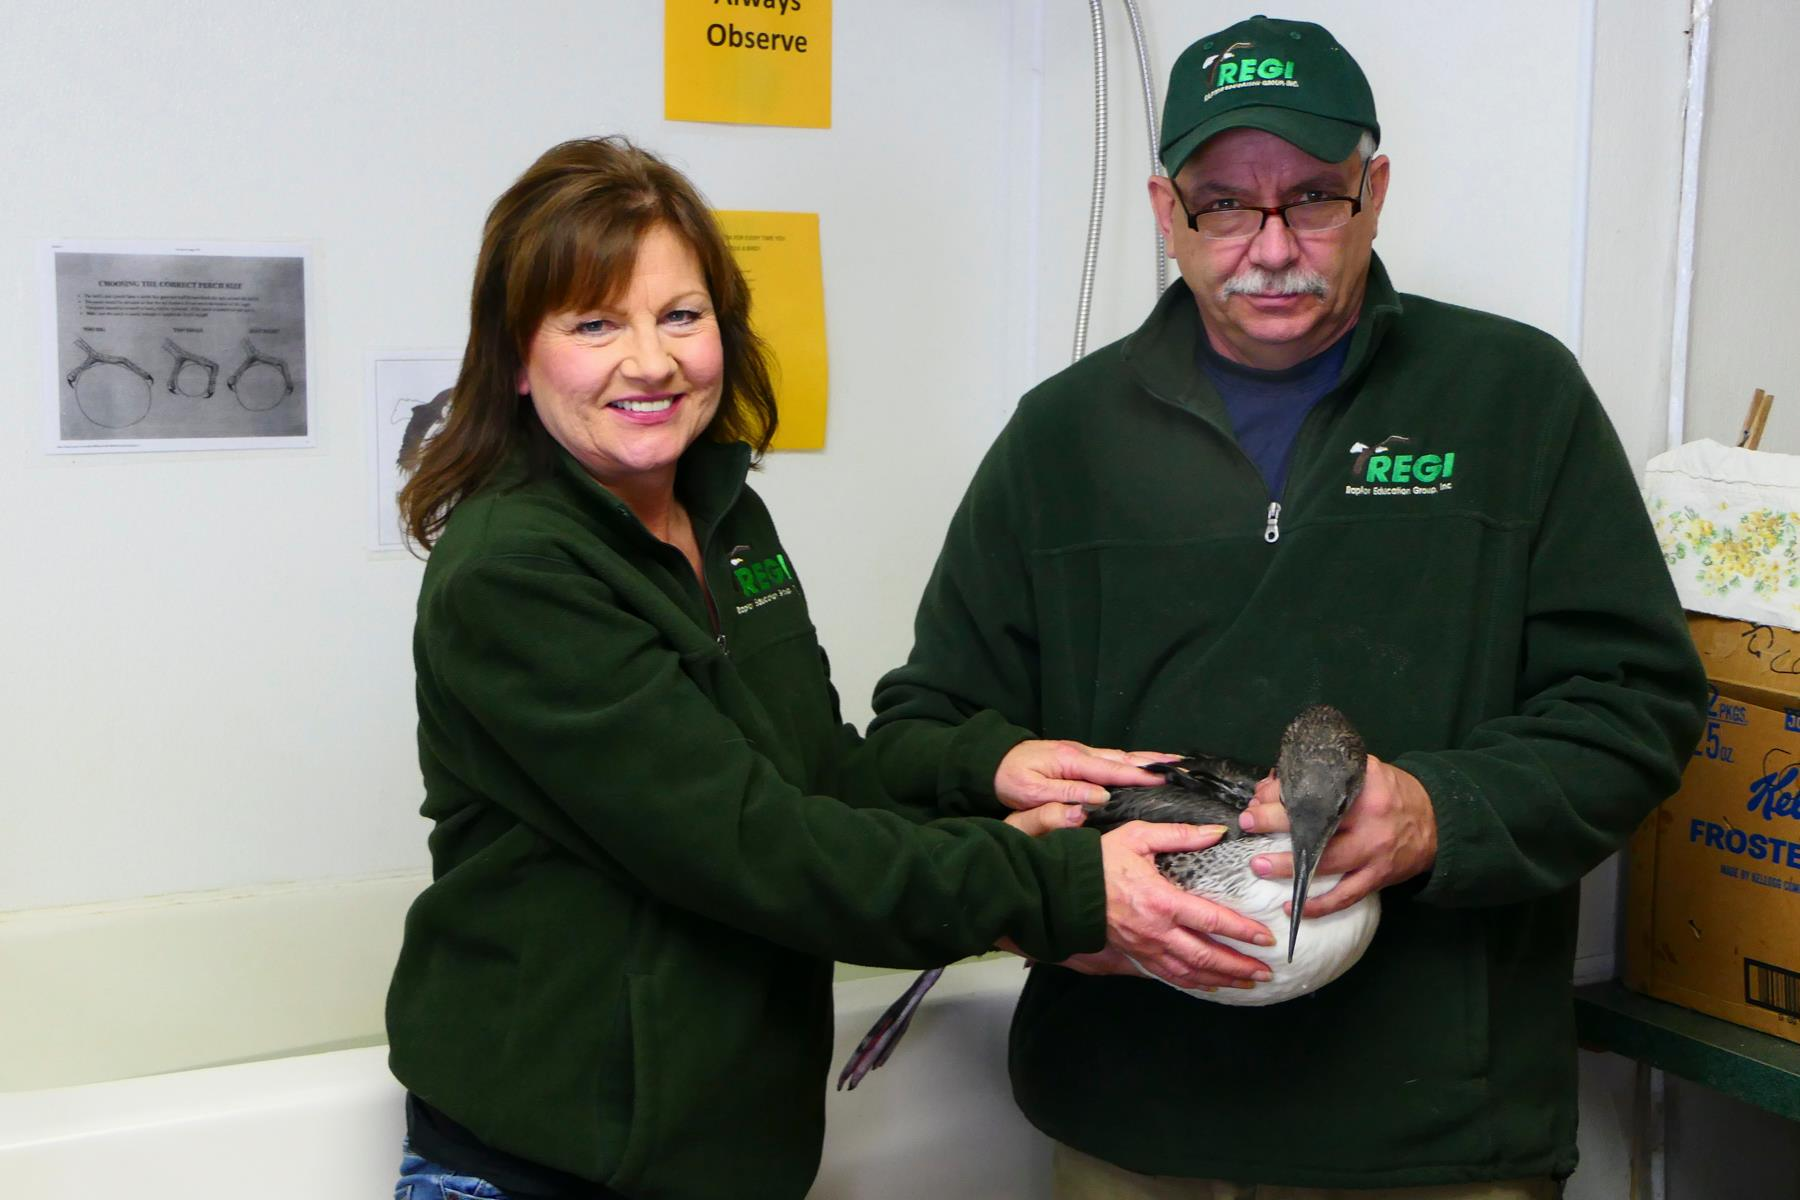 Kevin Grenzer and Linda Kevin Grenzer wtih one of their loon rescues back at REGI.